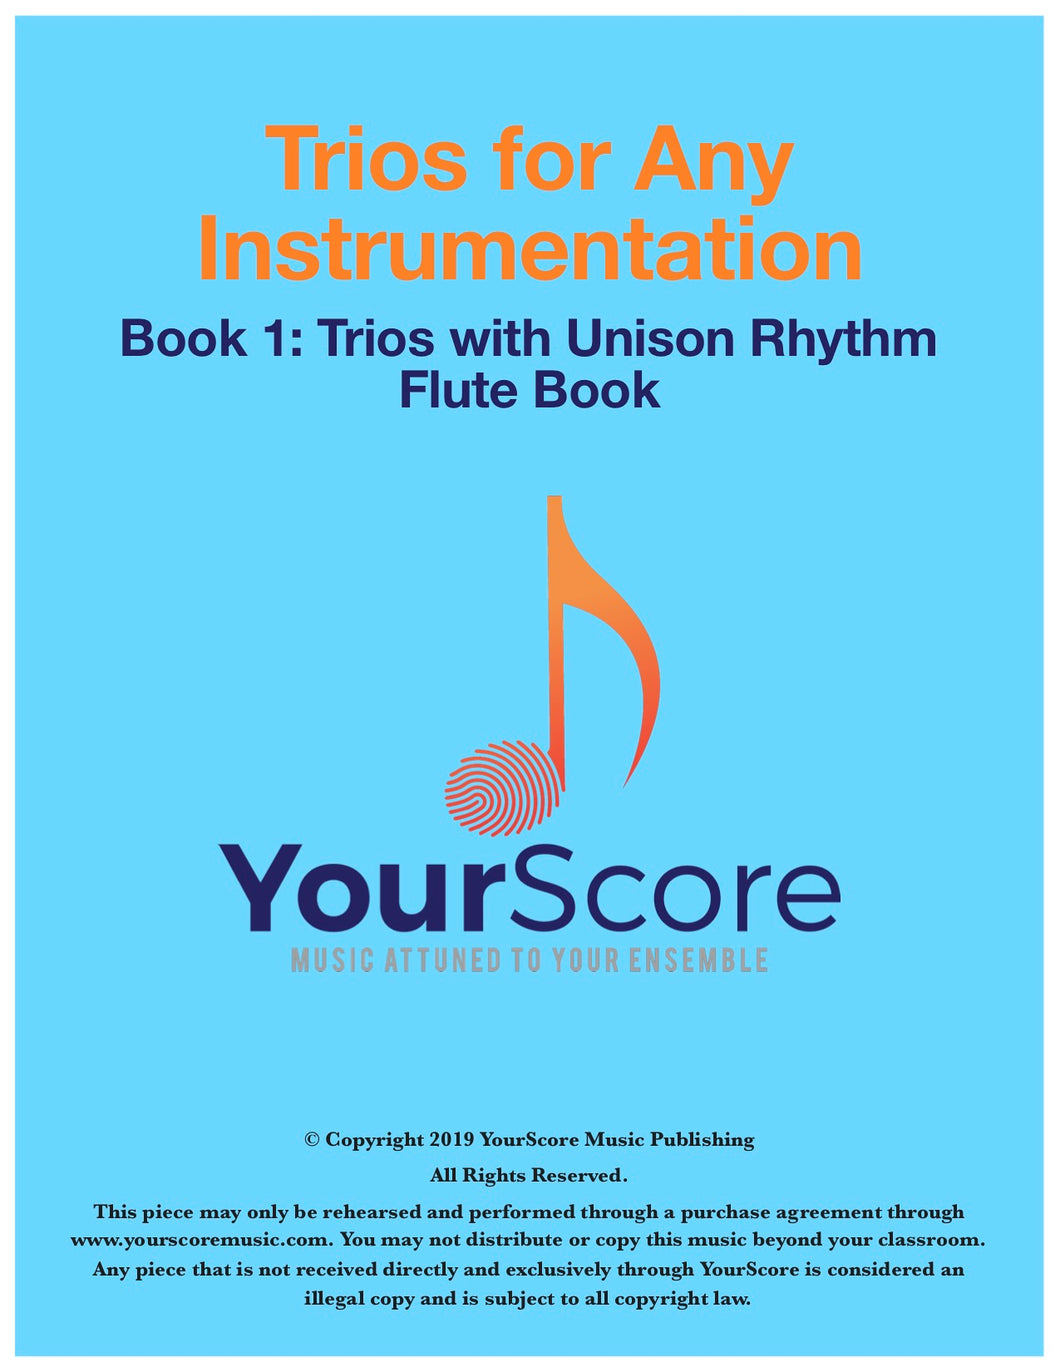 Cover of Trios for Any Instrumentation, a collection of trios for any instruments.